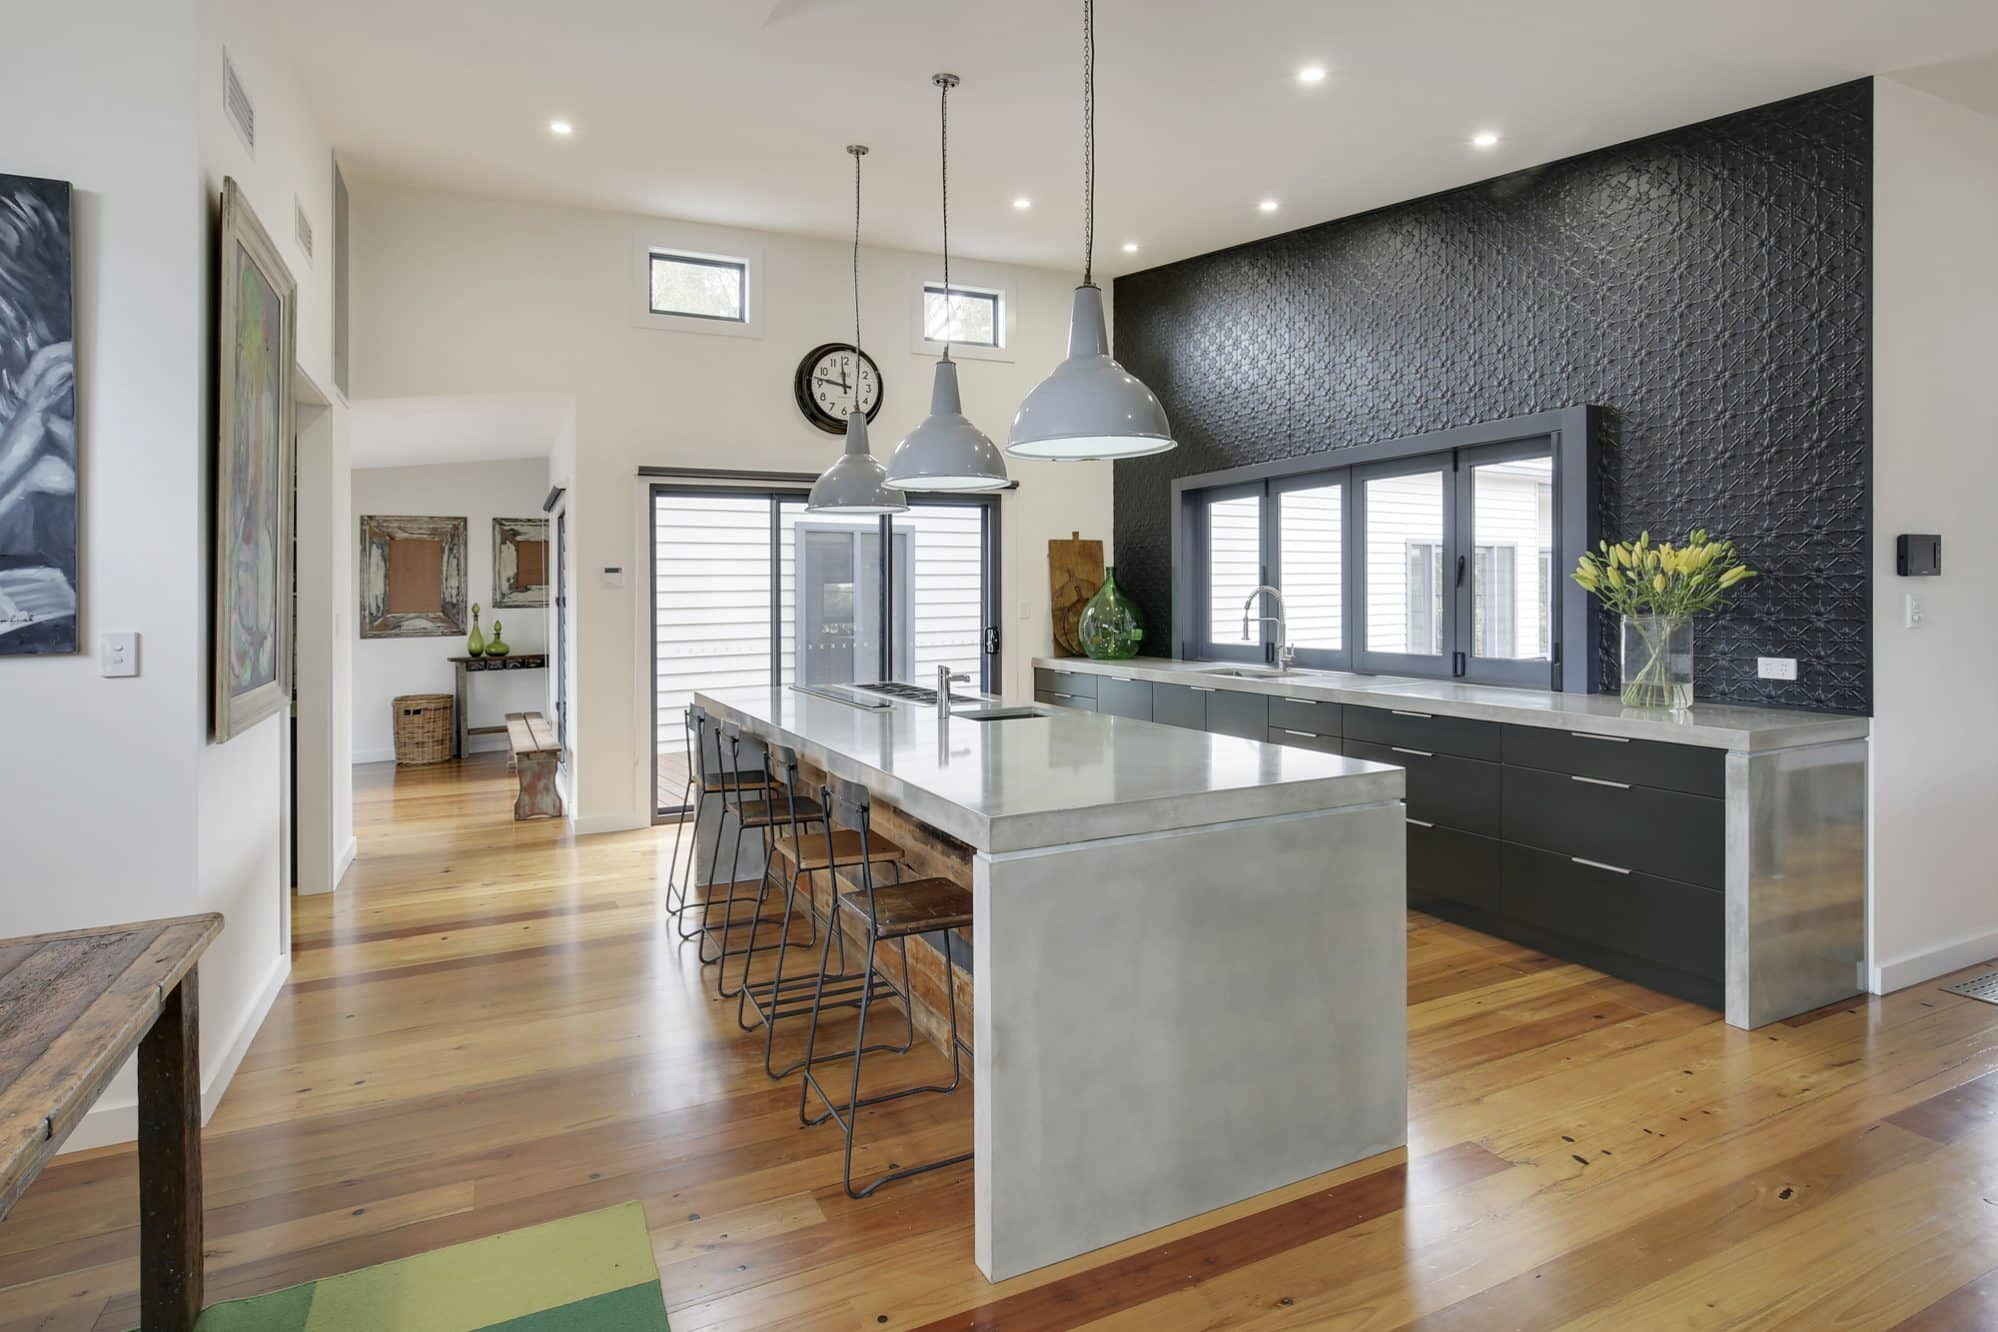 Mulgoa Kitchen Overall